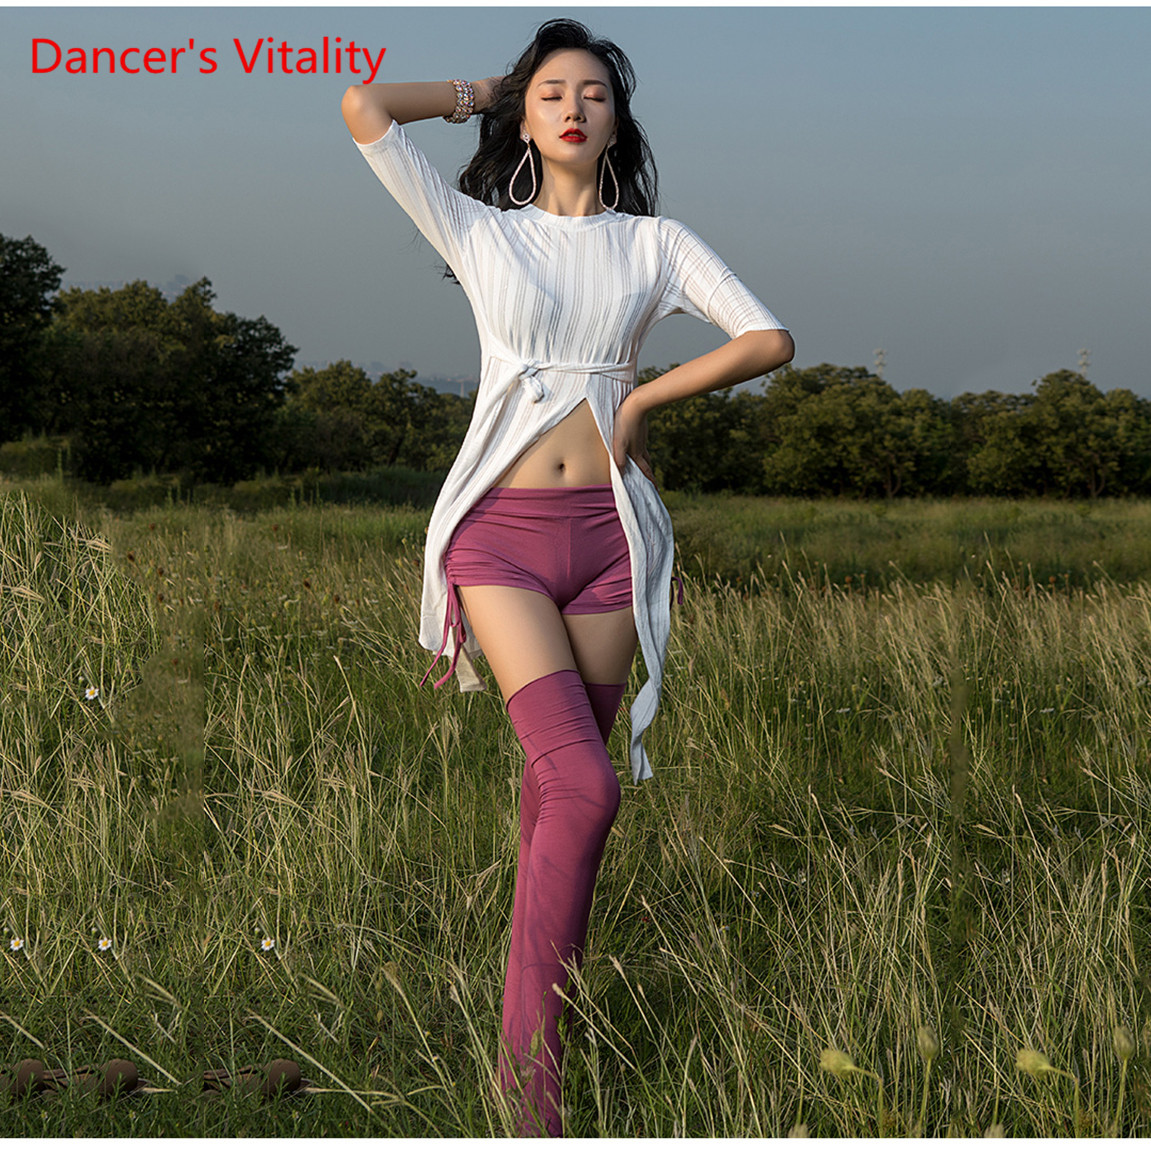 <font><b>Belly</b></font> Dance Practice Clothes Split Sexy Top Mid-<font><b>Sleeve</b></font> <font><b>Shirt</b></font> Shorts Socks <font><b>Belly</b></font> Dance Dance Dress Free Delivery image